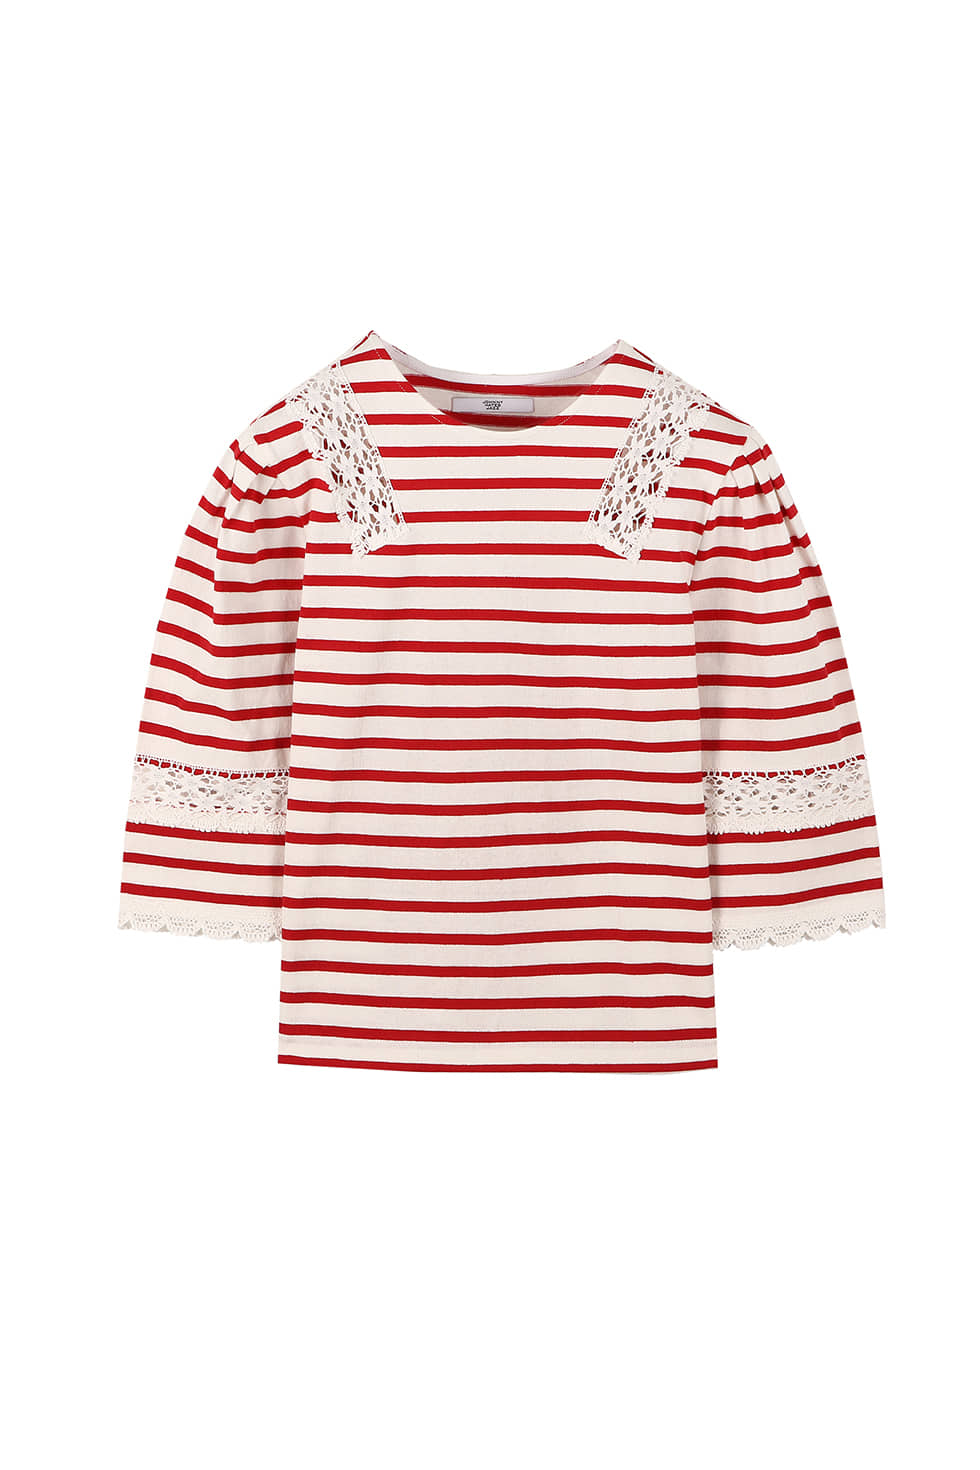 STRIPE JERSEY TOP - RED